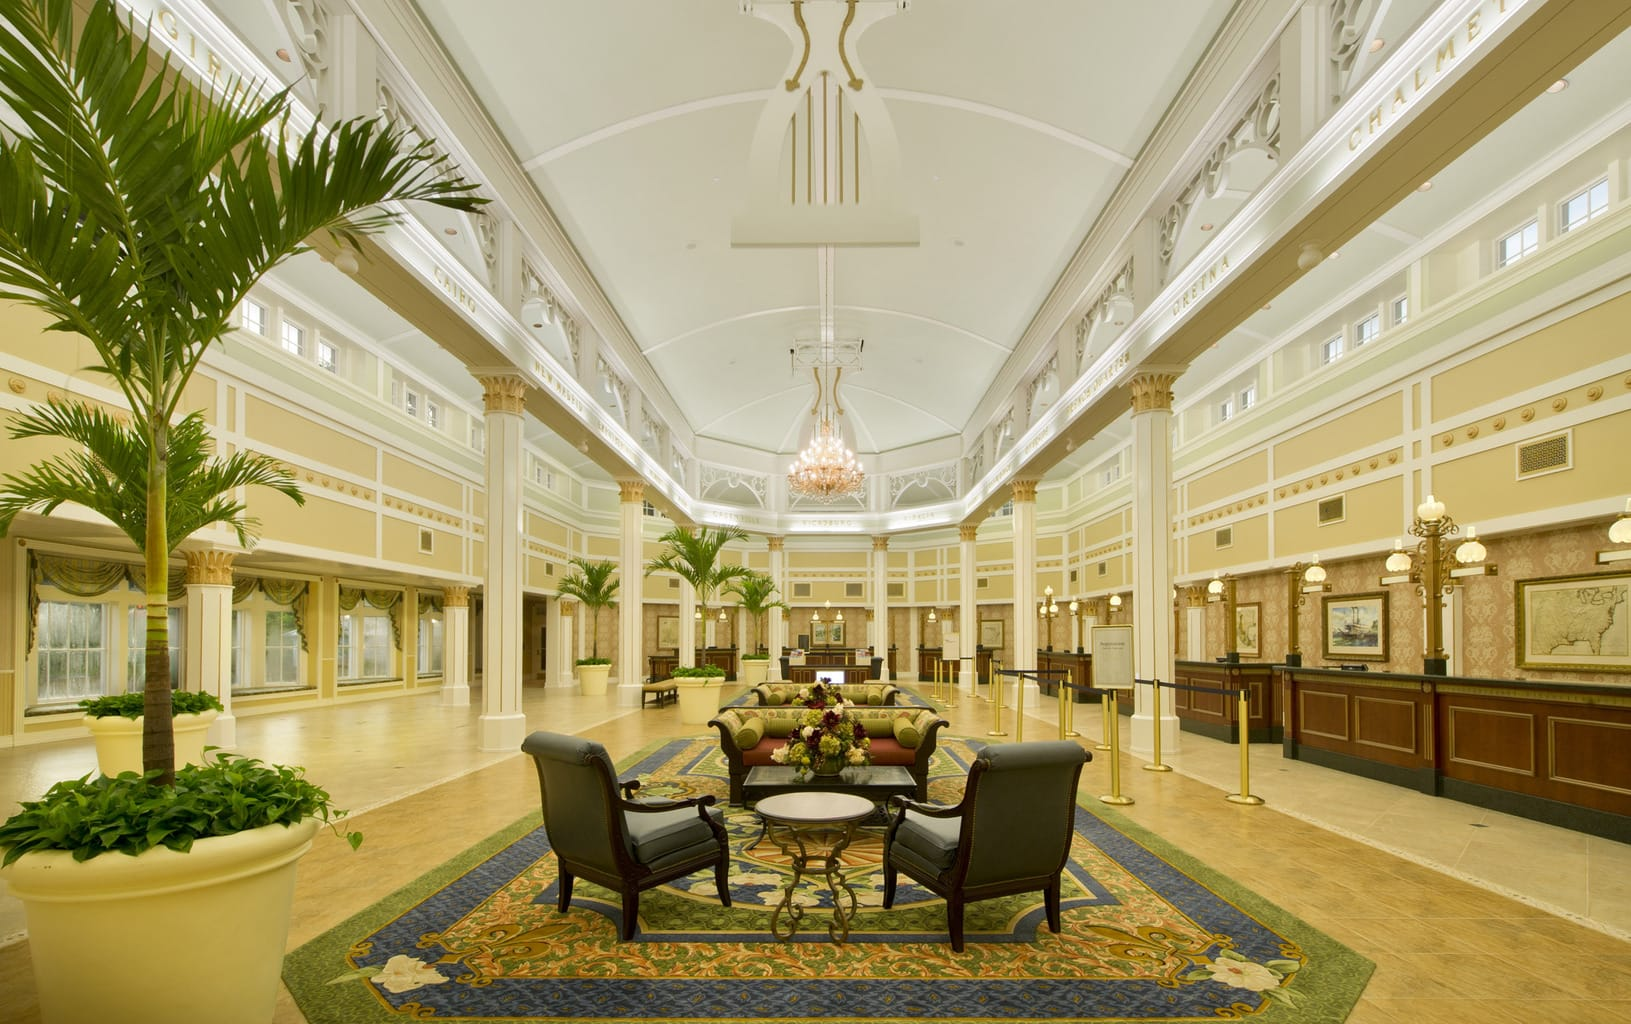 """Recently, I had the pleasure of staying at Disney's Port Orleans Resort. A """"Moderate"""" resort, in between Value and Deluxe, according to the Disney website."""